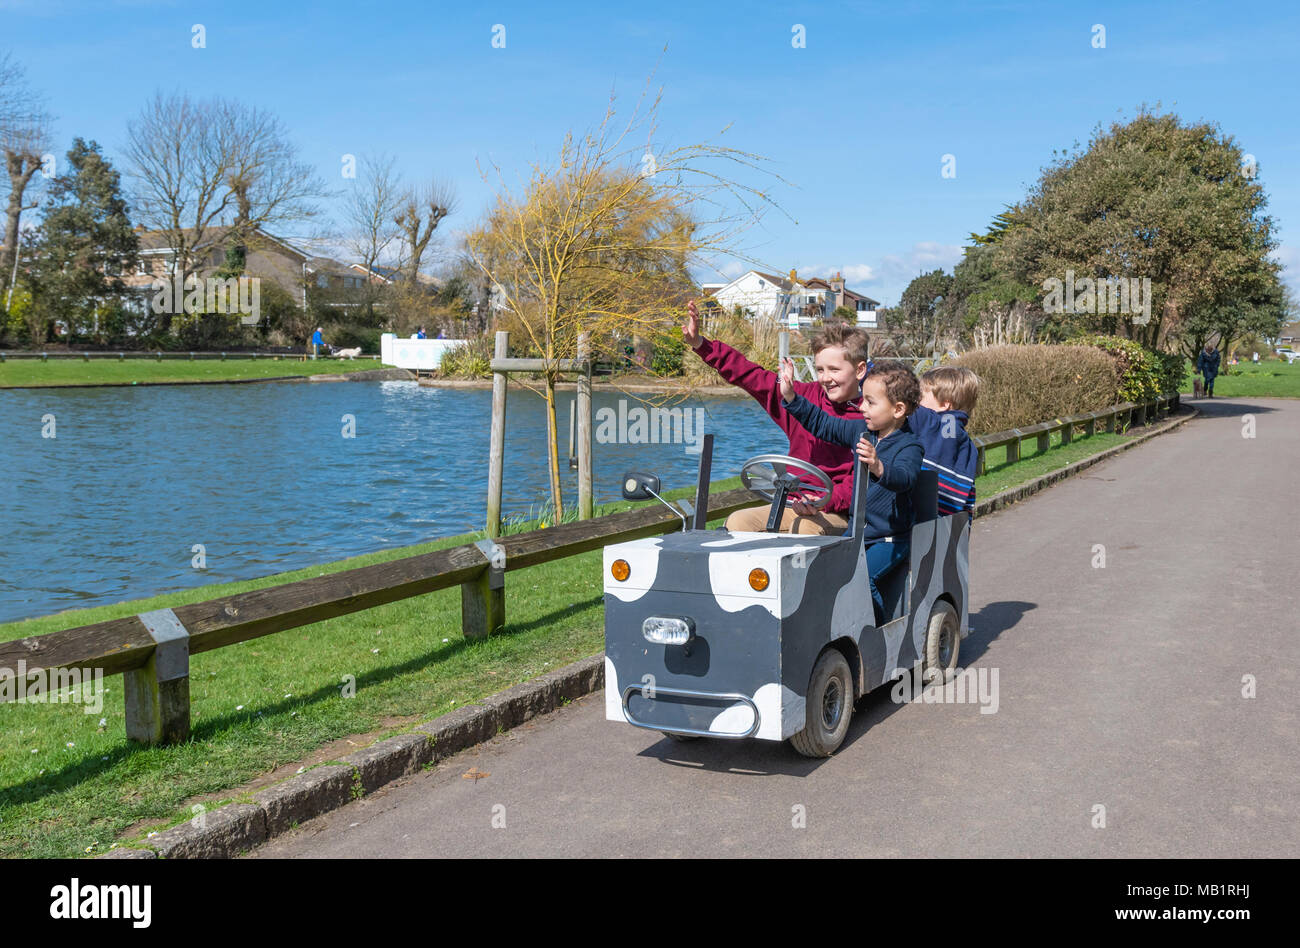 Children riding in a ride on motorised child's vehicle in a park while waving to people, in the UK. - Stock Image